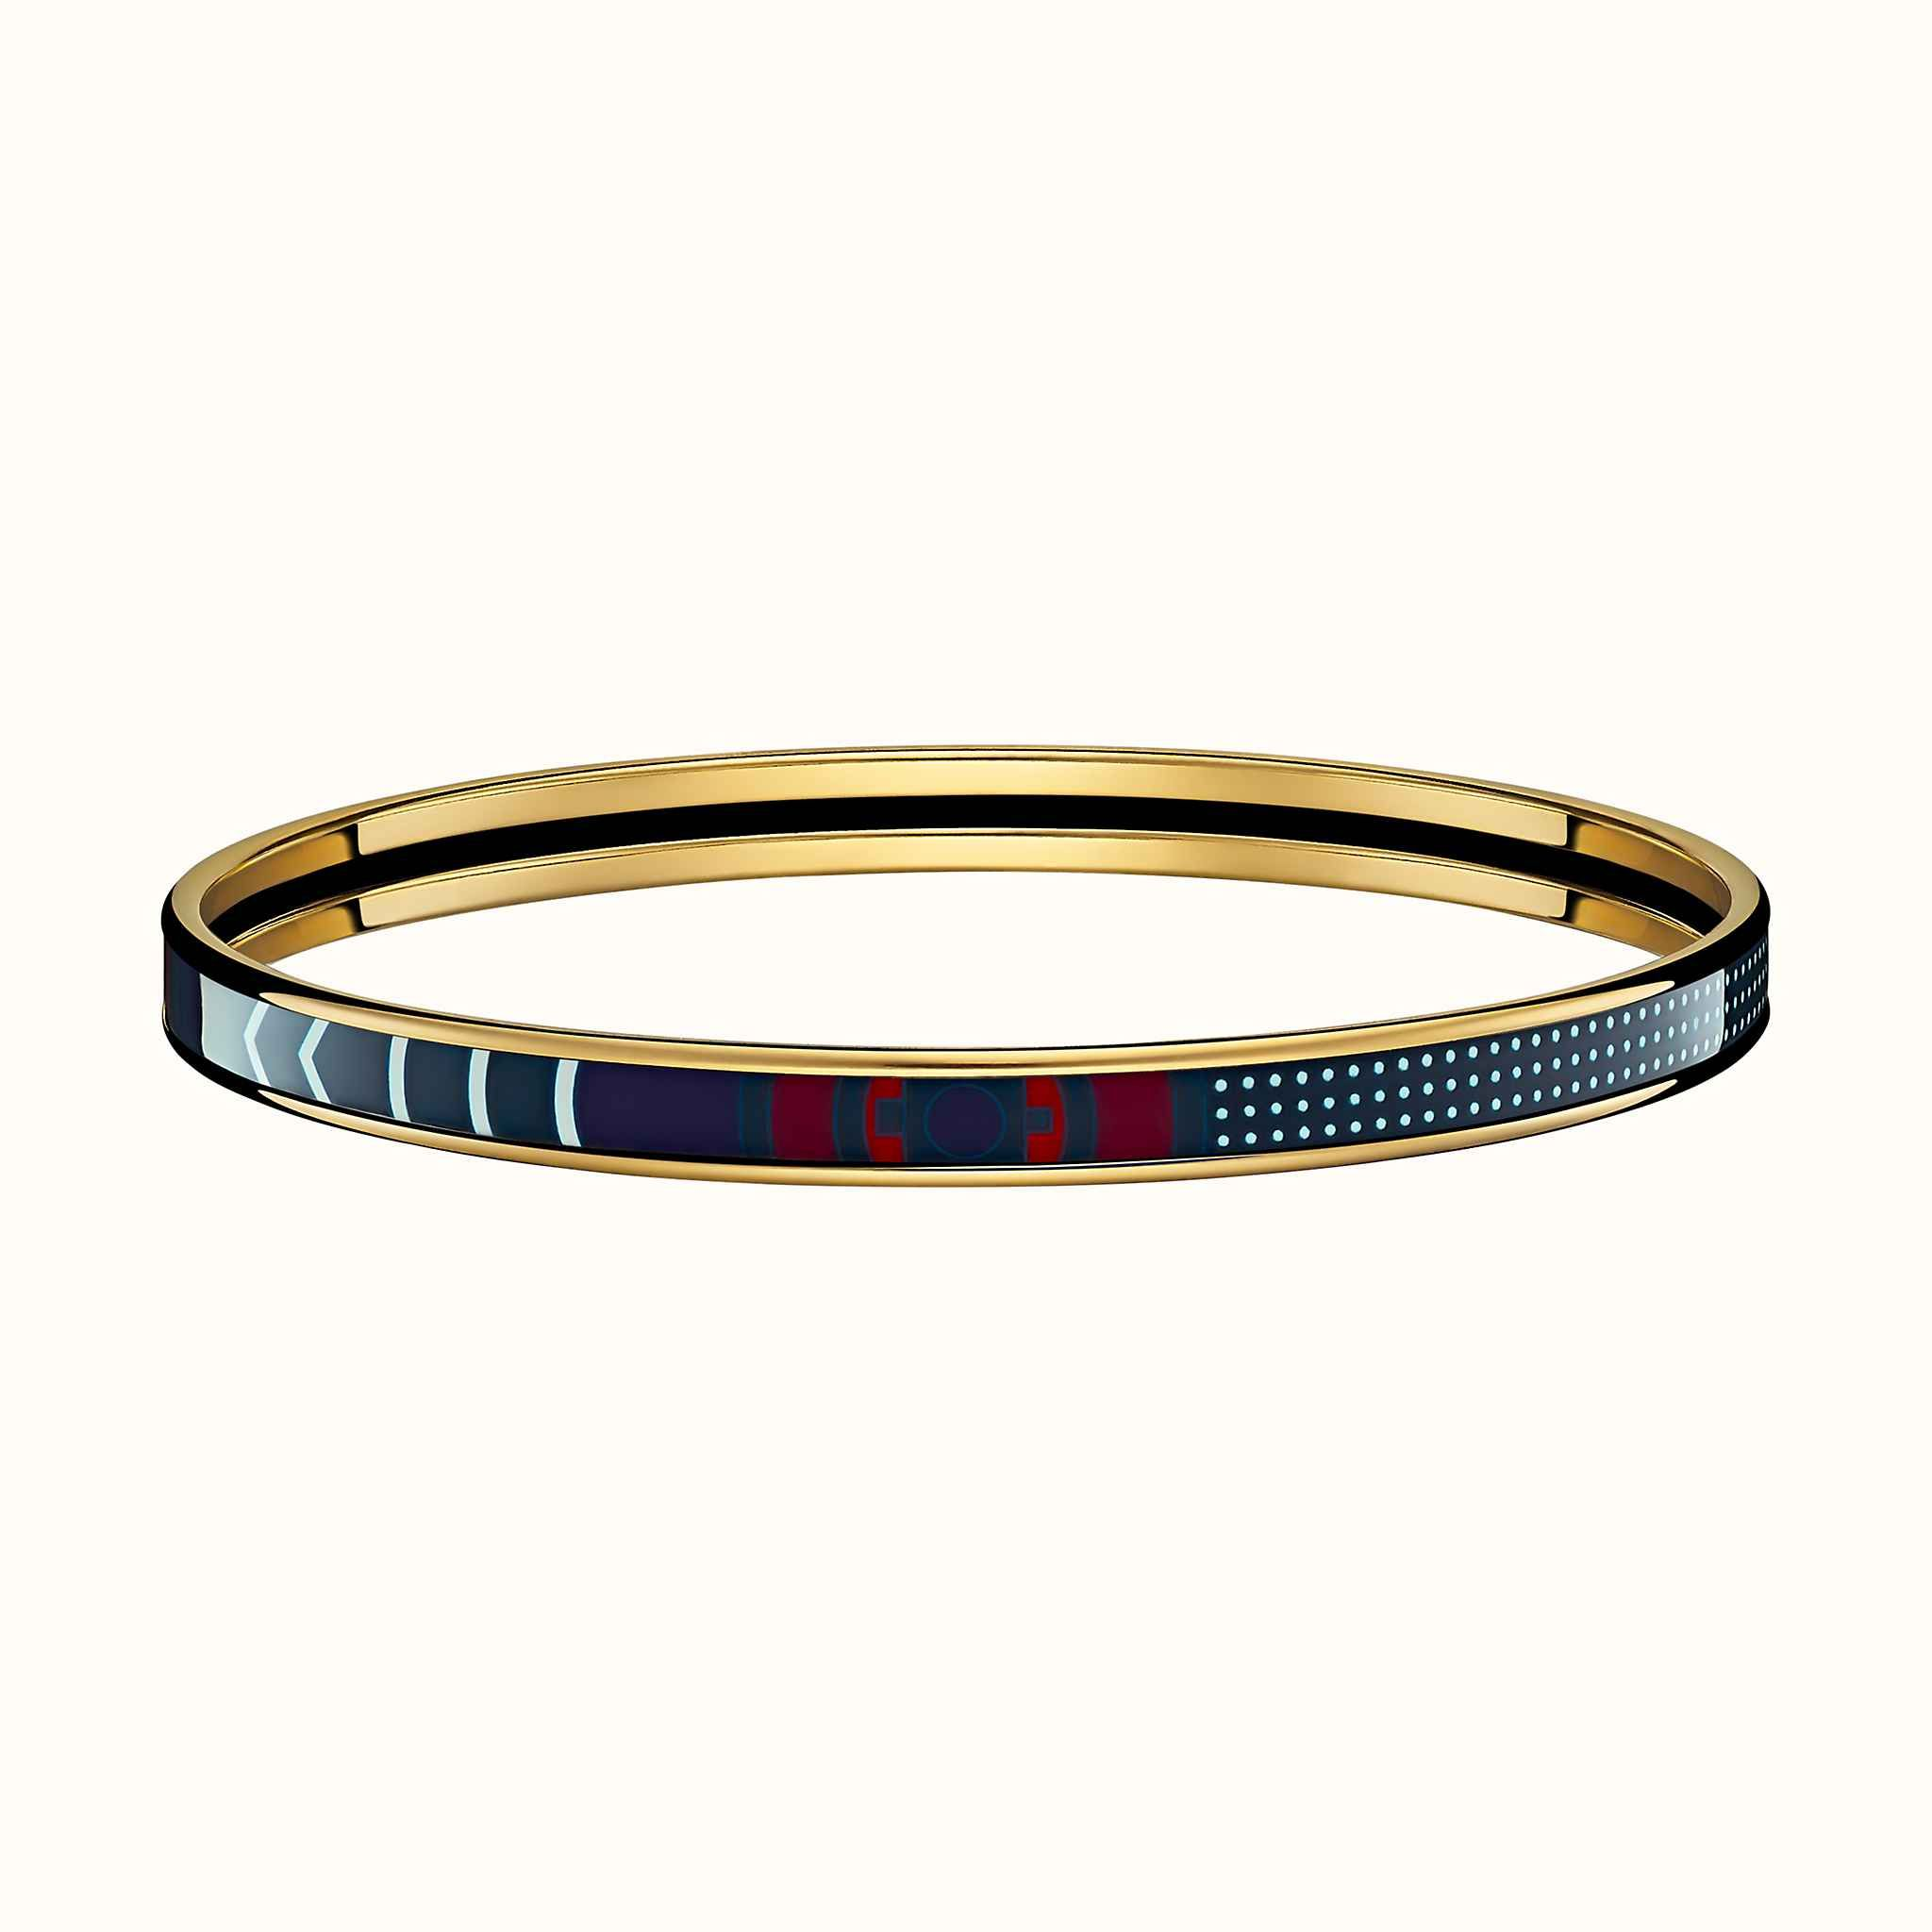 d440d61fec6 Washington's Carriage Detail bangle | Hermès - clair de lune Product  reference: H241991F 9570